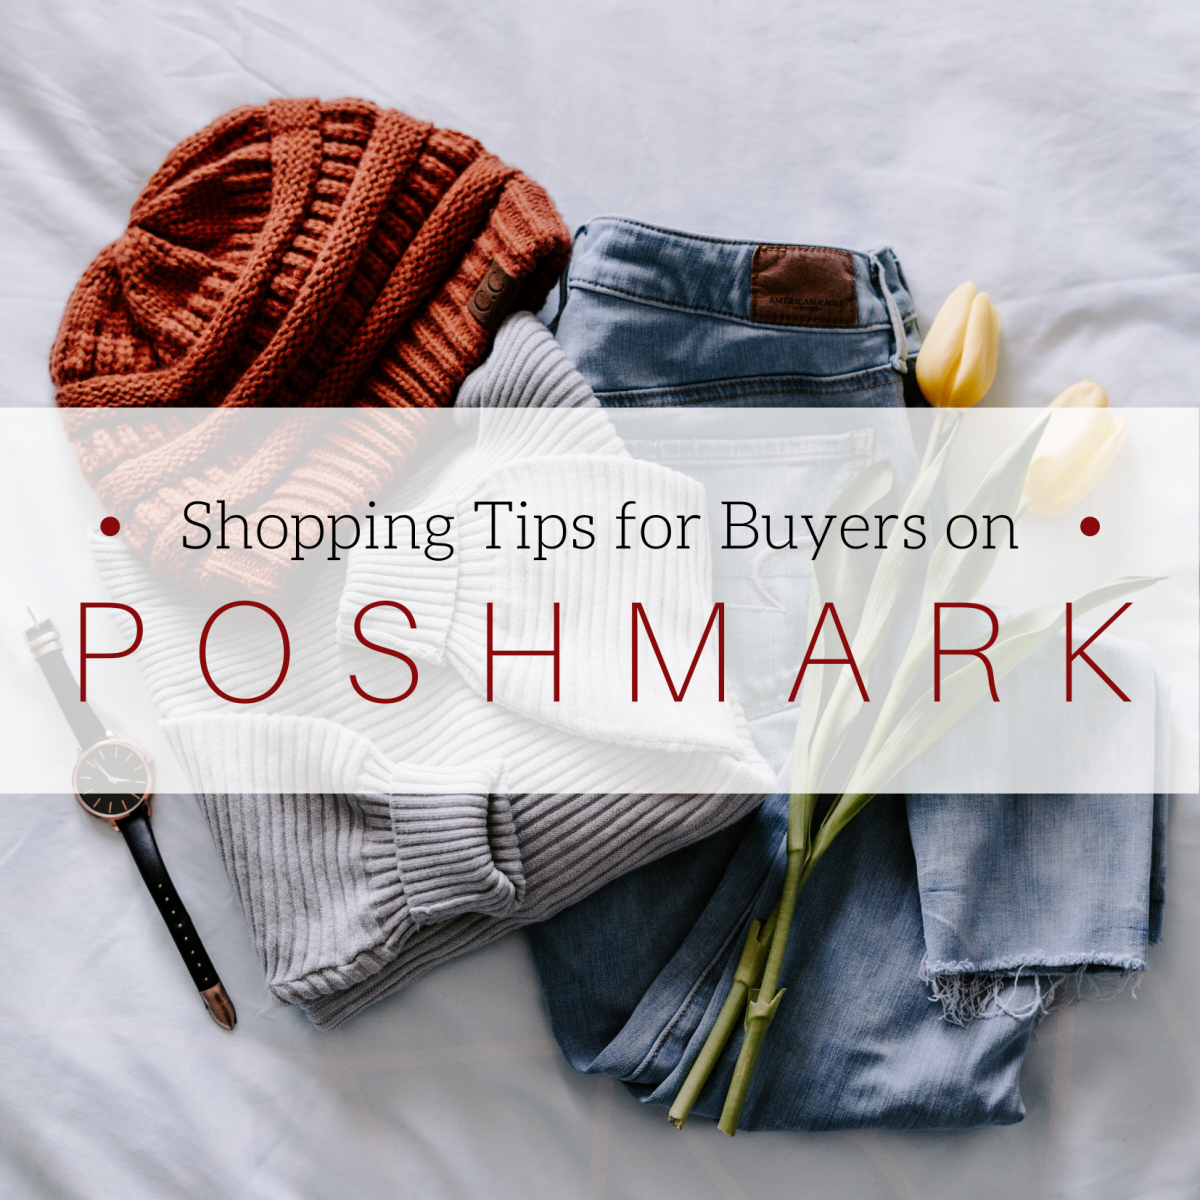 How Does Shopping on Poshmark Work? Tips for Buyers